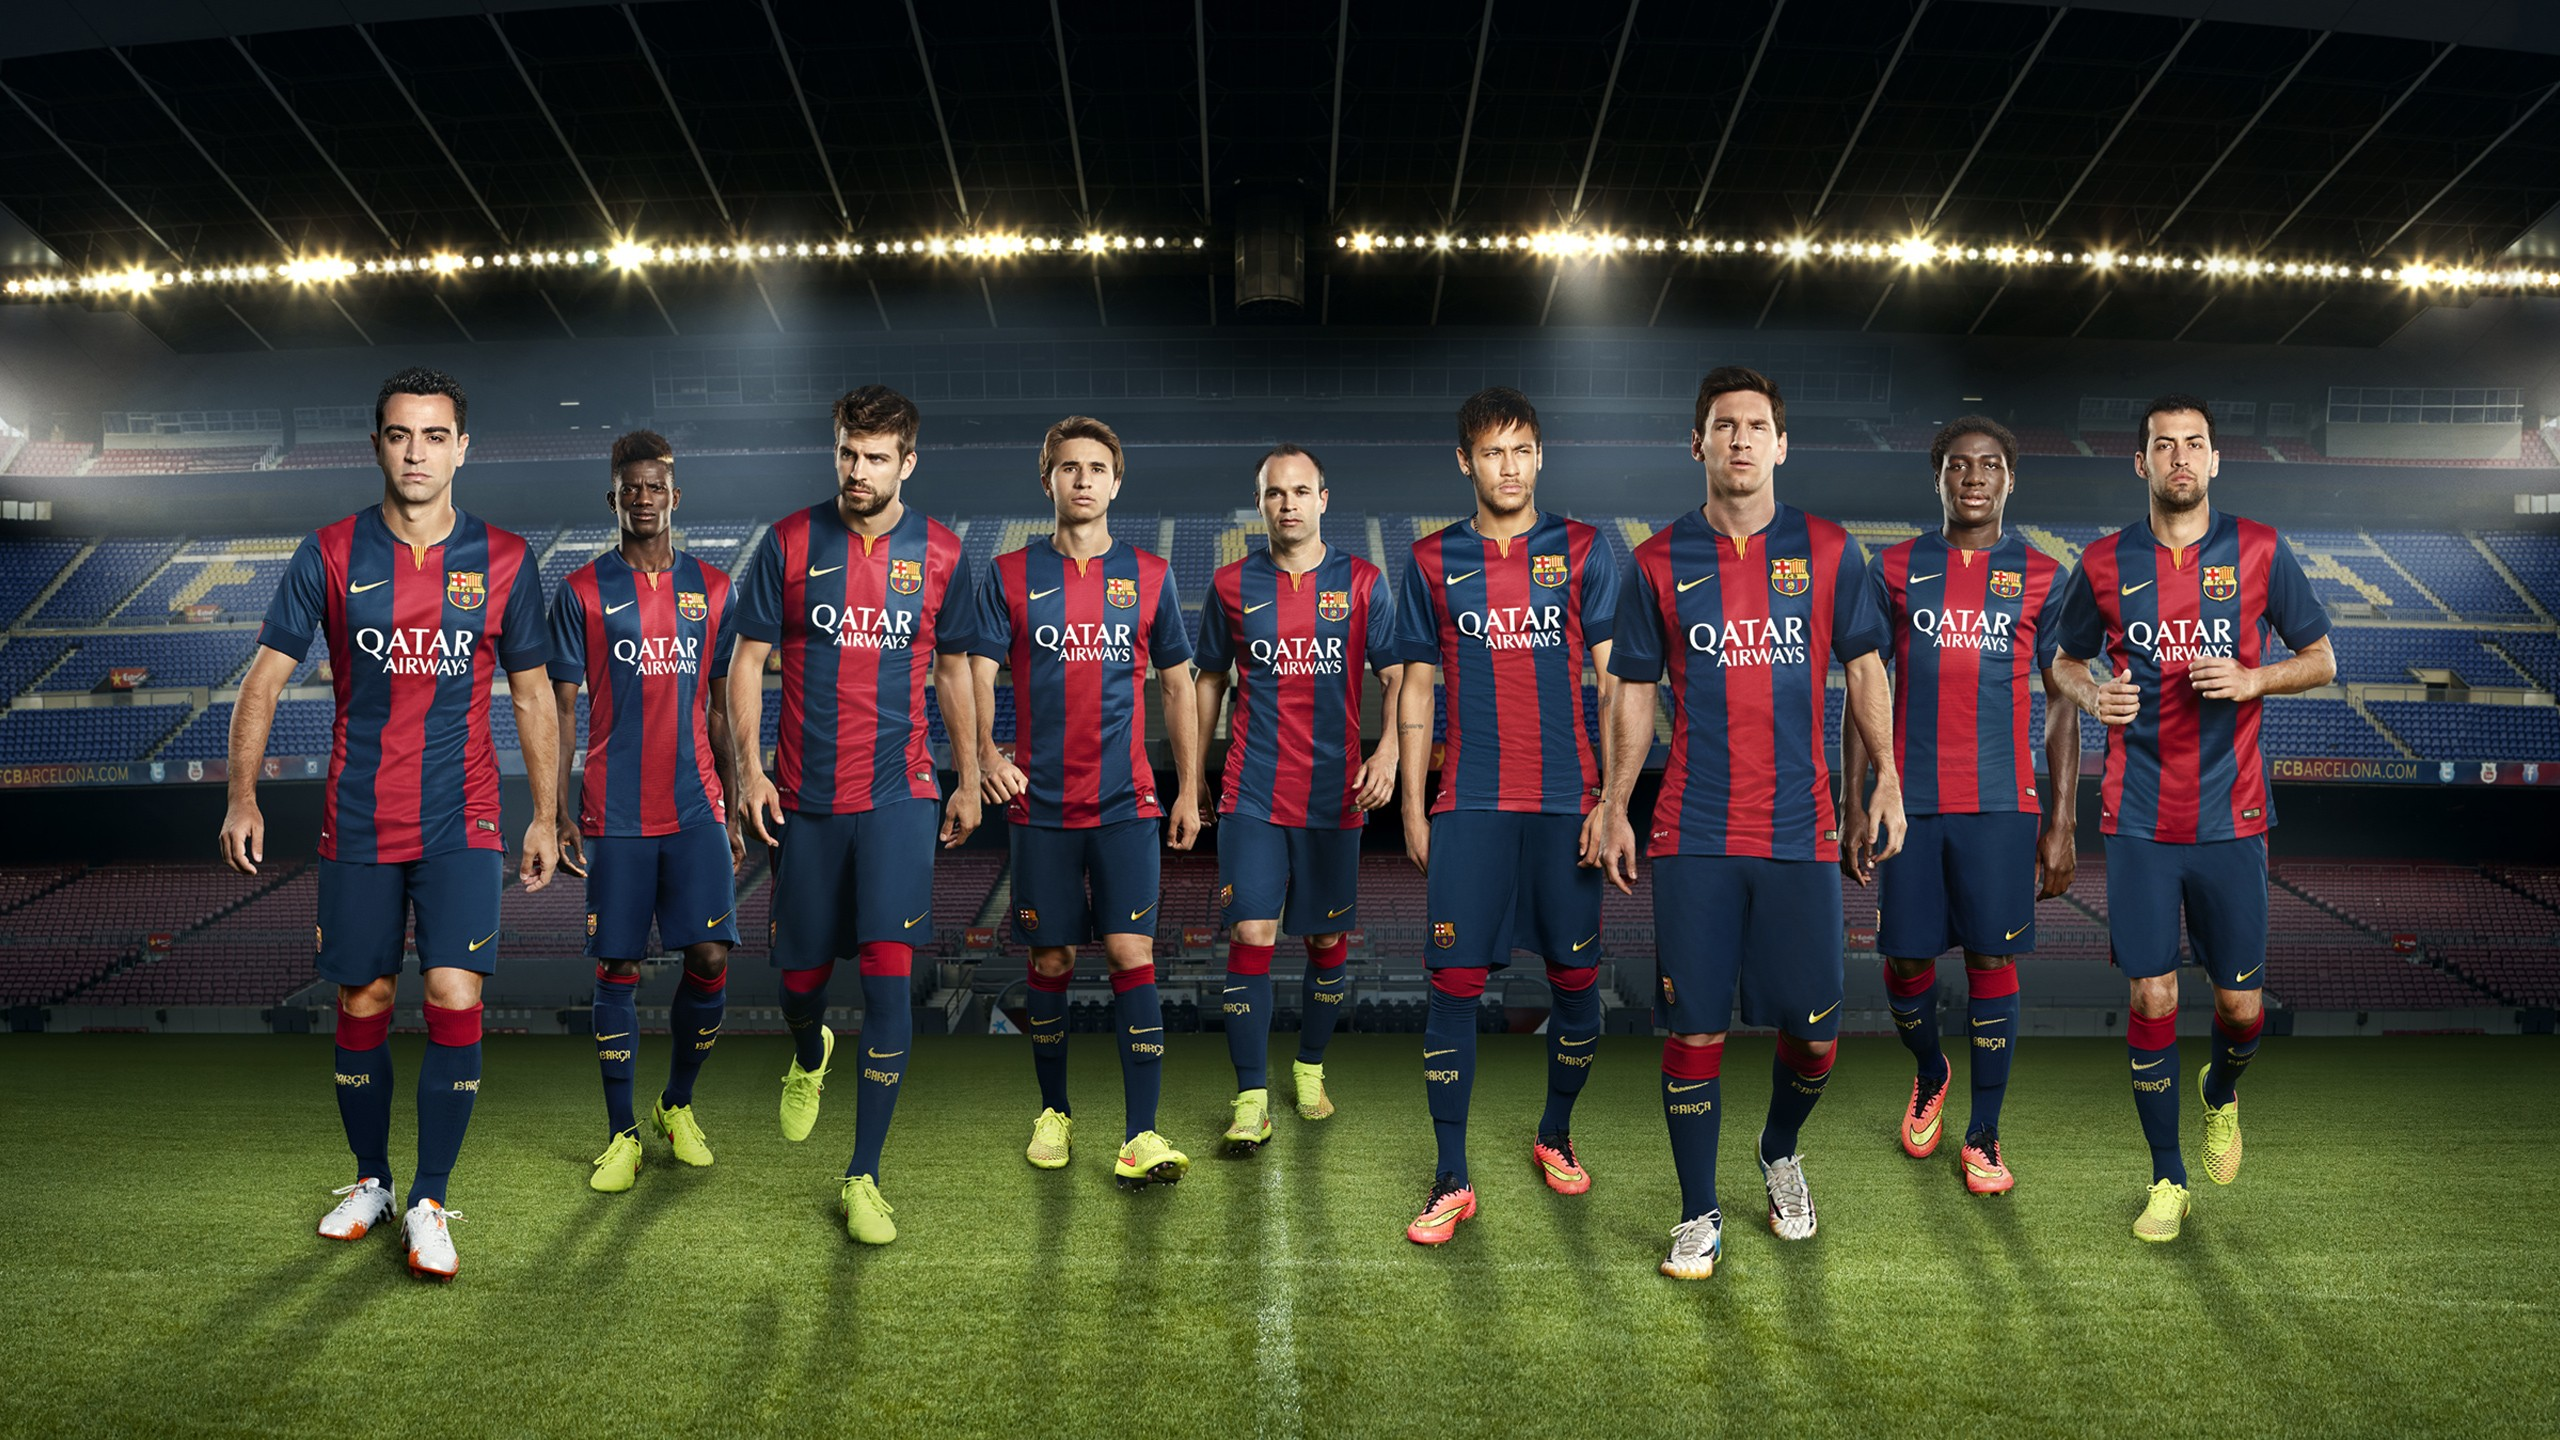 Barcelona Football Club Team Wallpaper 2560x1440